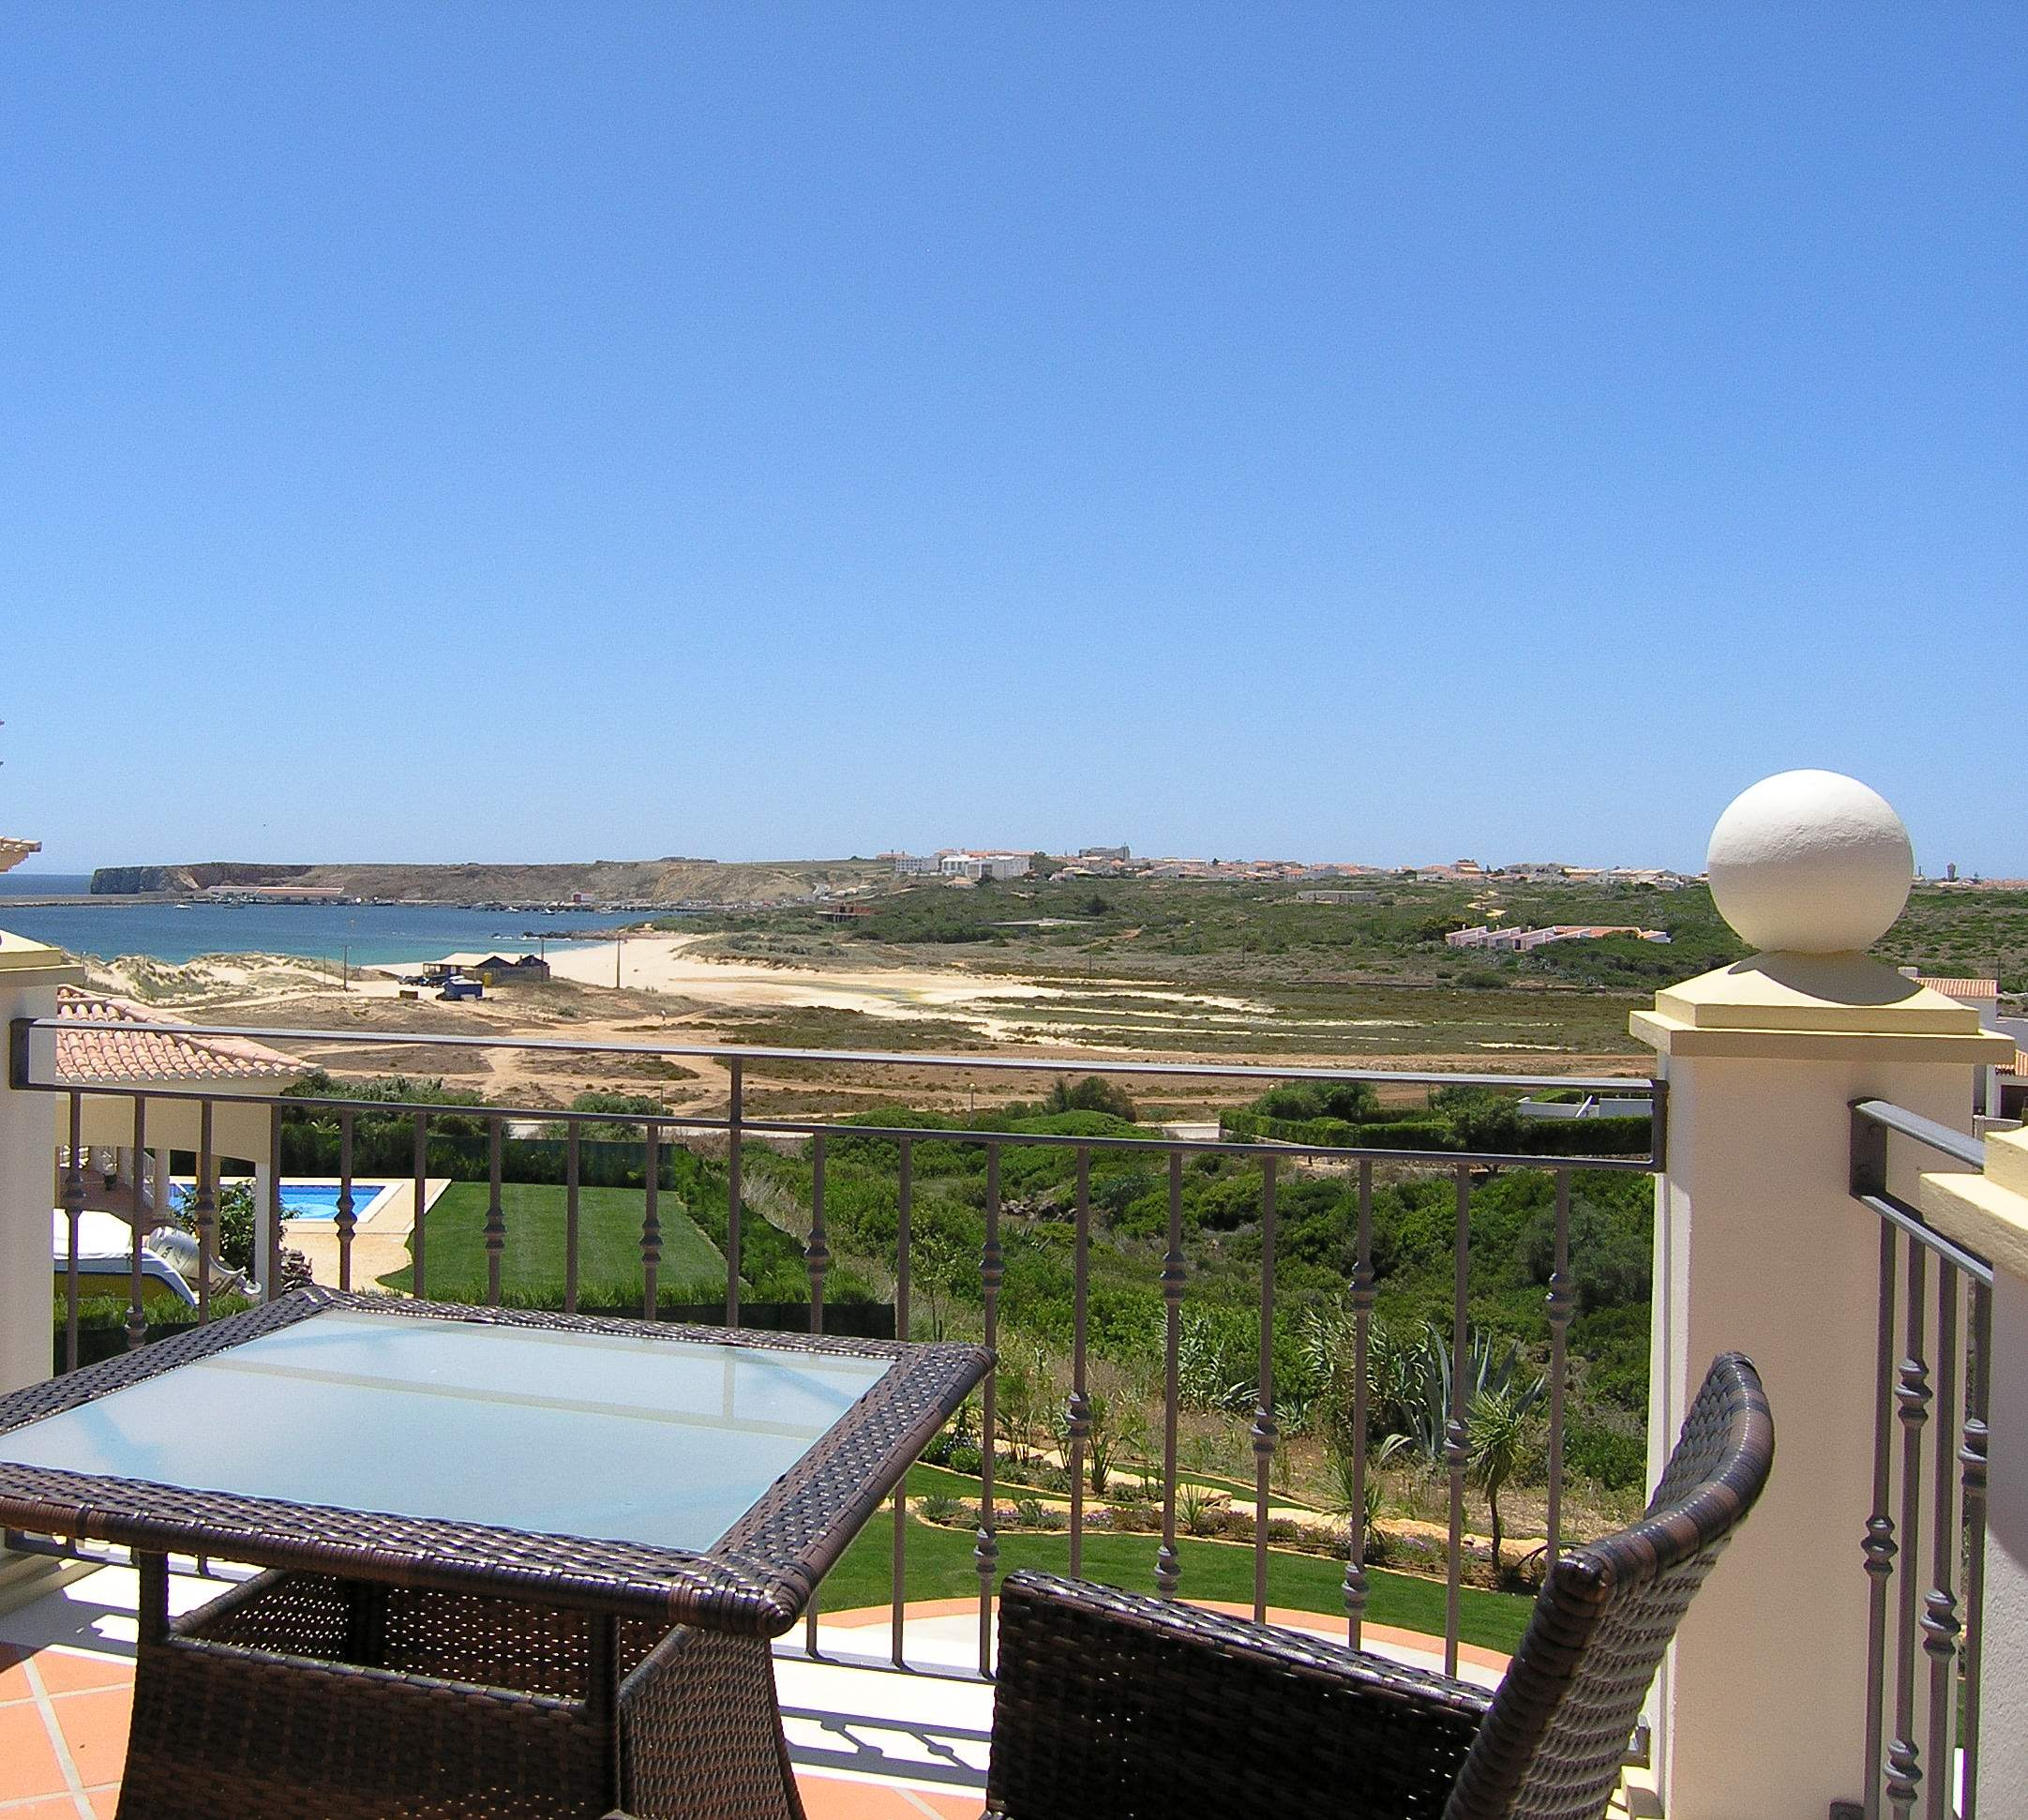 Martinhal Luxury Villa No.44, 3 bedroom villa in Martinhal Sagres, Algarve Photo #6